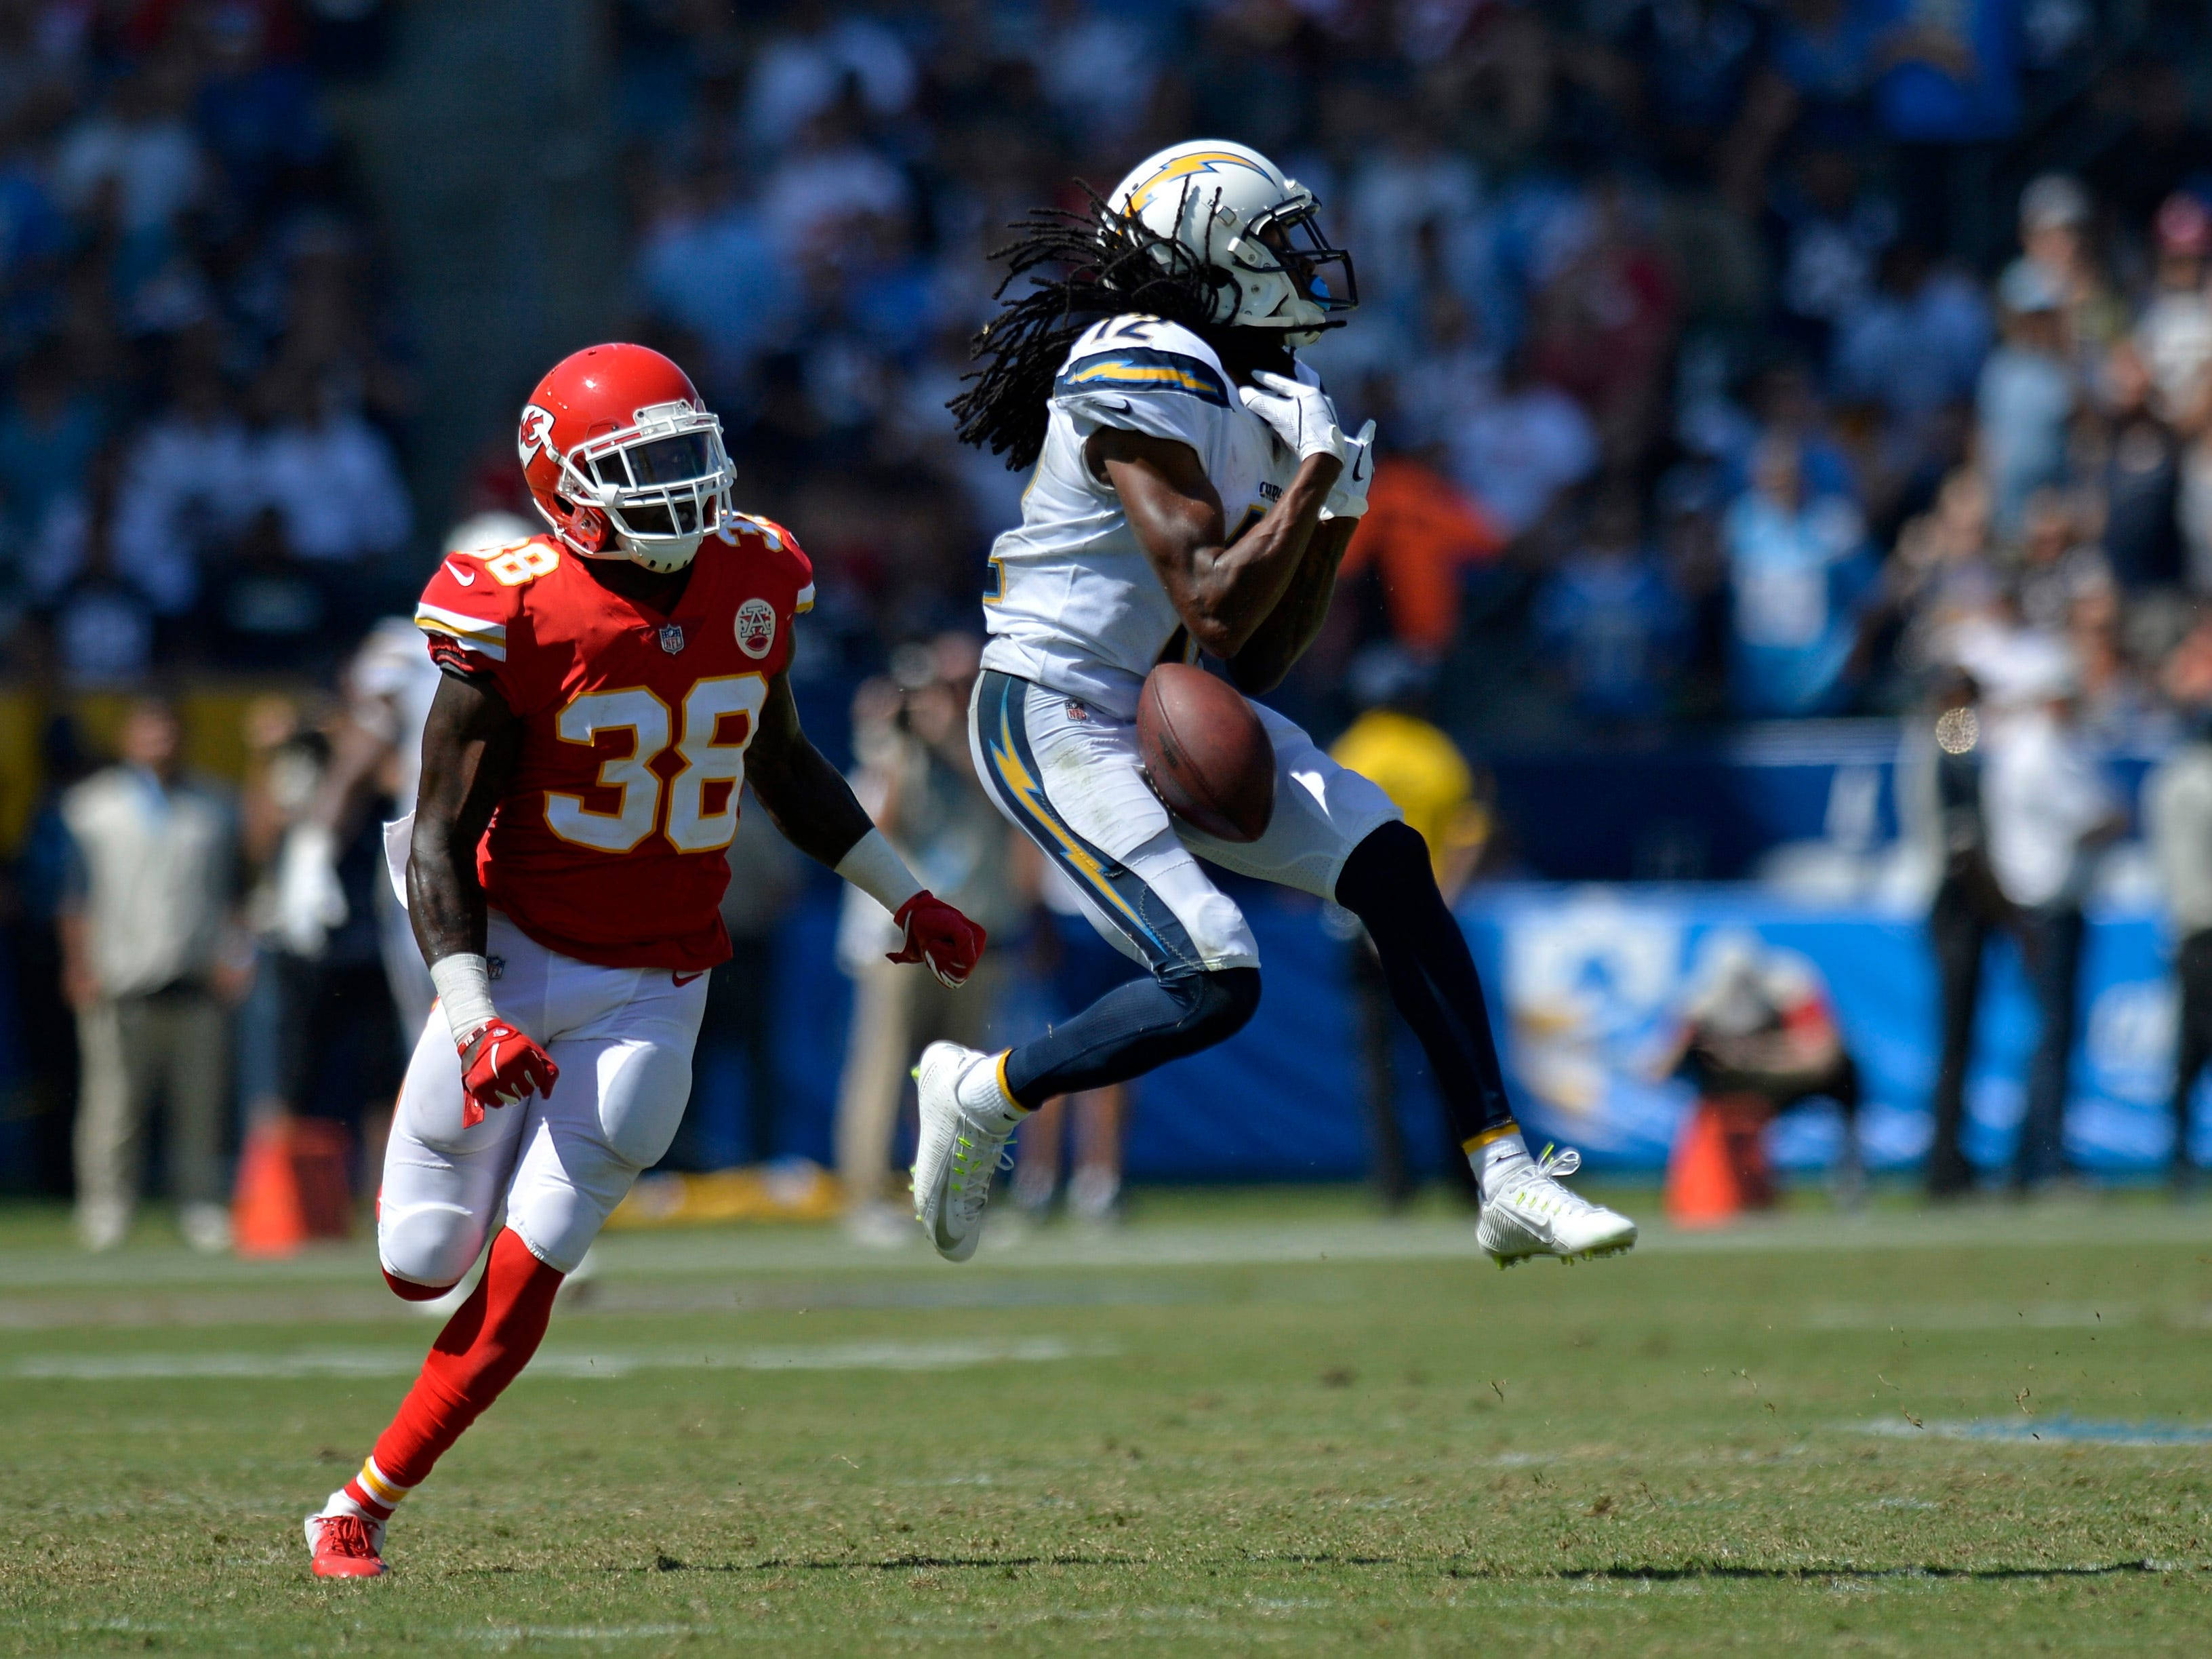 11. Chargers (9): Whether it was (another) key field-goal miss or giving up 91-yard punt return, Bolts' special teams remain especially abysmal.